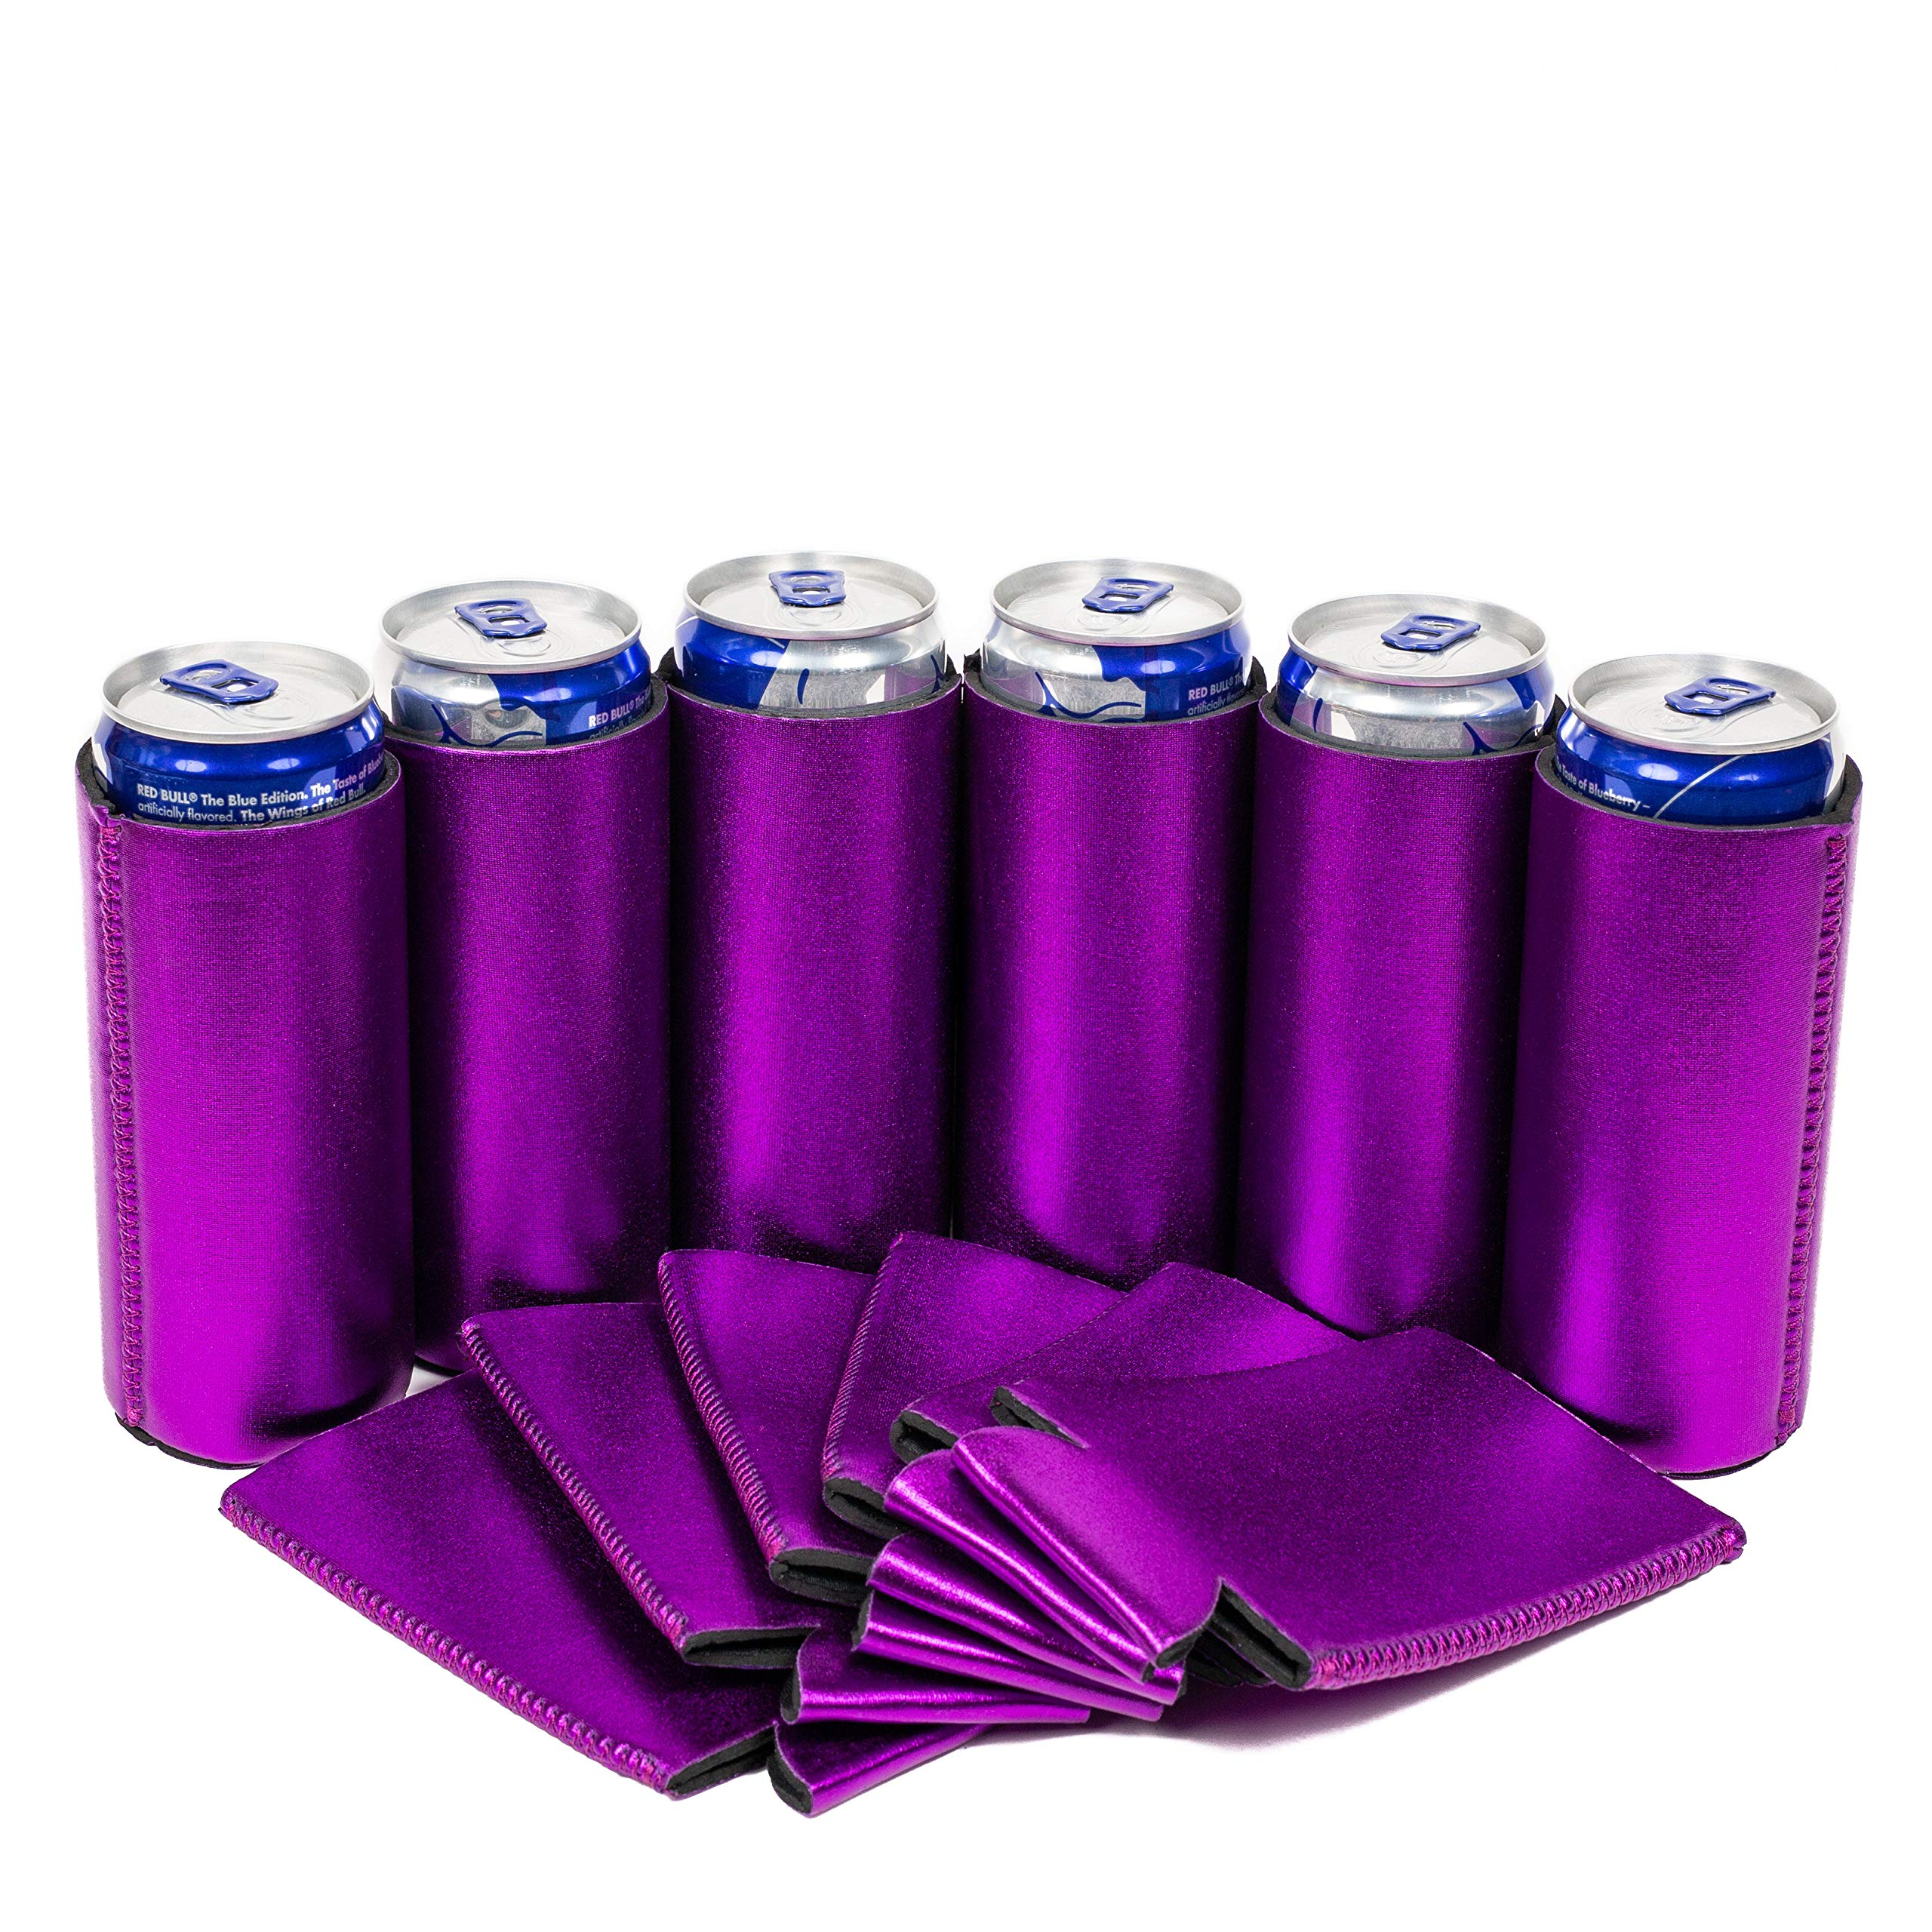 QualityPerfection 6 Slim Can Cooler Sleeve - Beer Blank Skinny 12 oz Neoprene Coolie - Perfect For 12oz RedBull,Michelob Ultra,Truly (6, Metallic Purple)